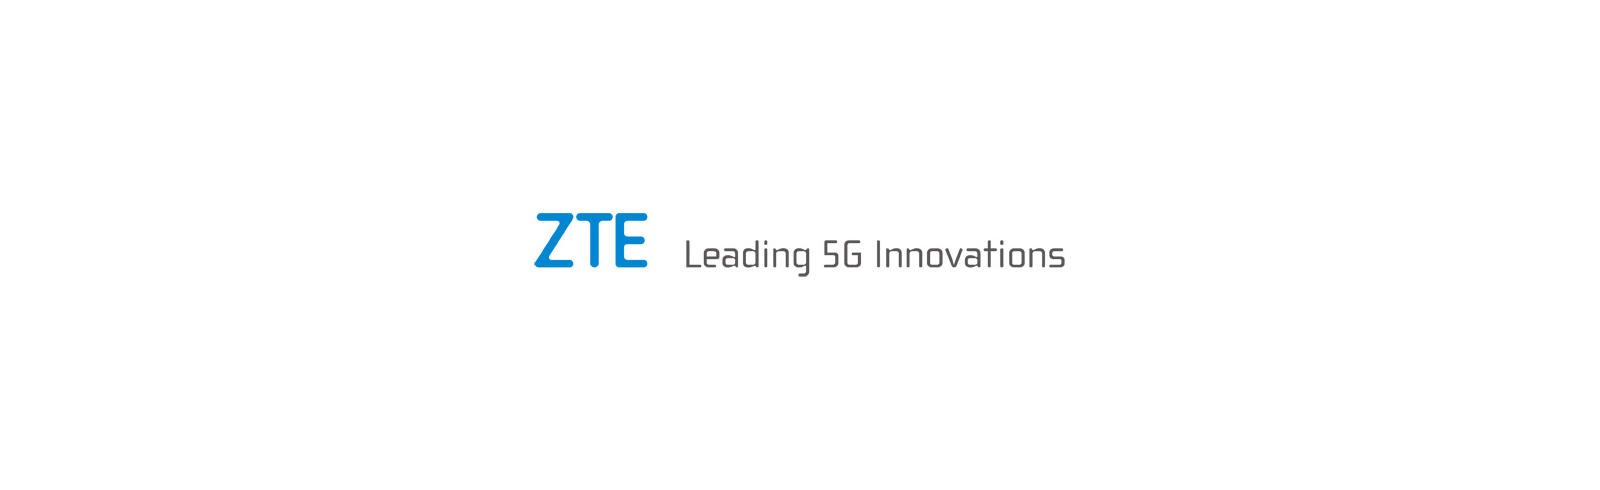 ZTE and China Unicom complete the world's first 5G call with a ZTE 5G prototype smartphone